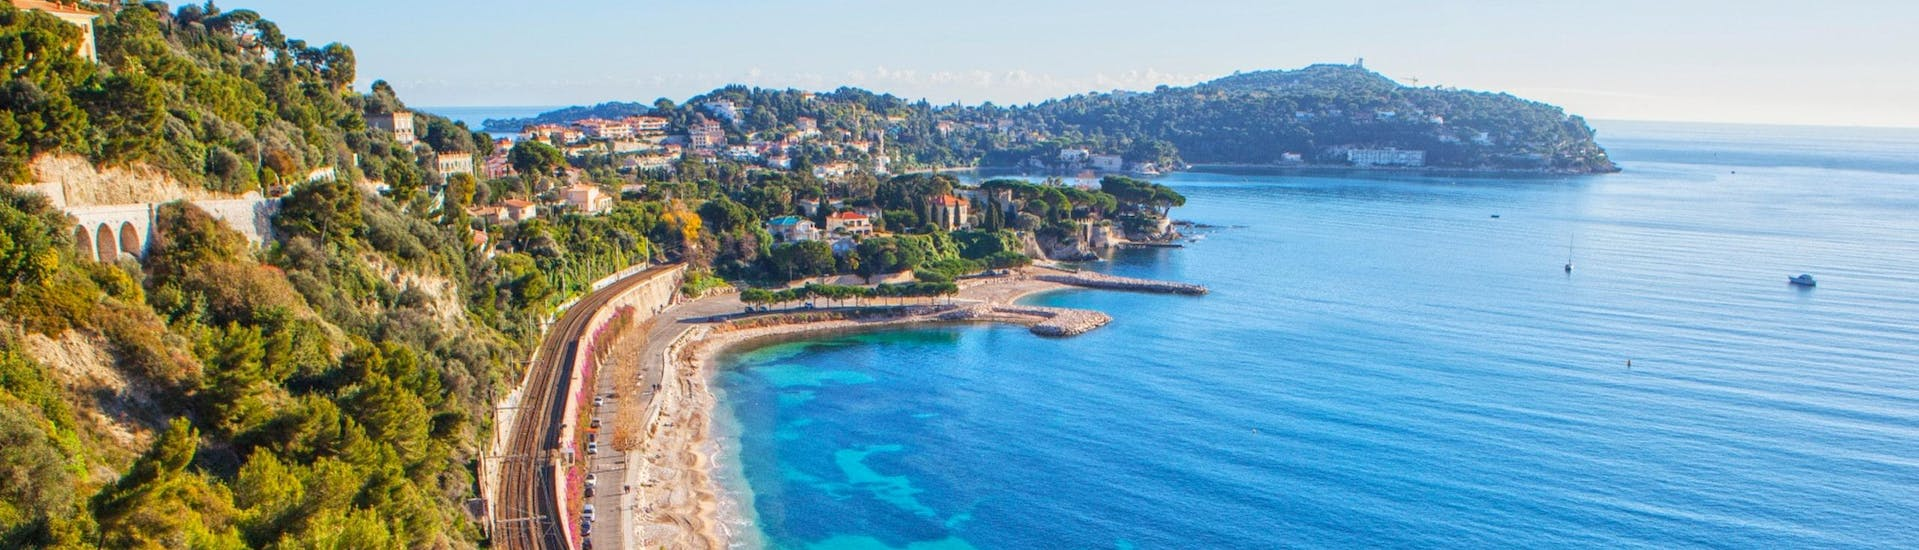 An image of the beach and the deep blue waters of the Côte d'Azur you get to see when riding a jet ski or doing other water sports activities in Antibes.